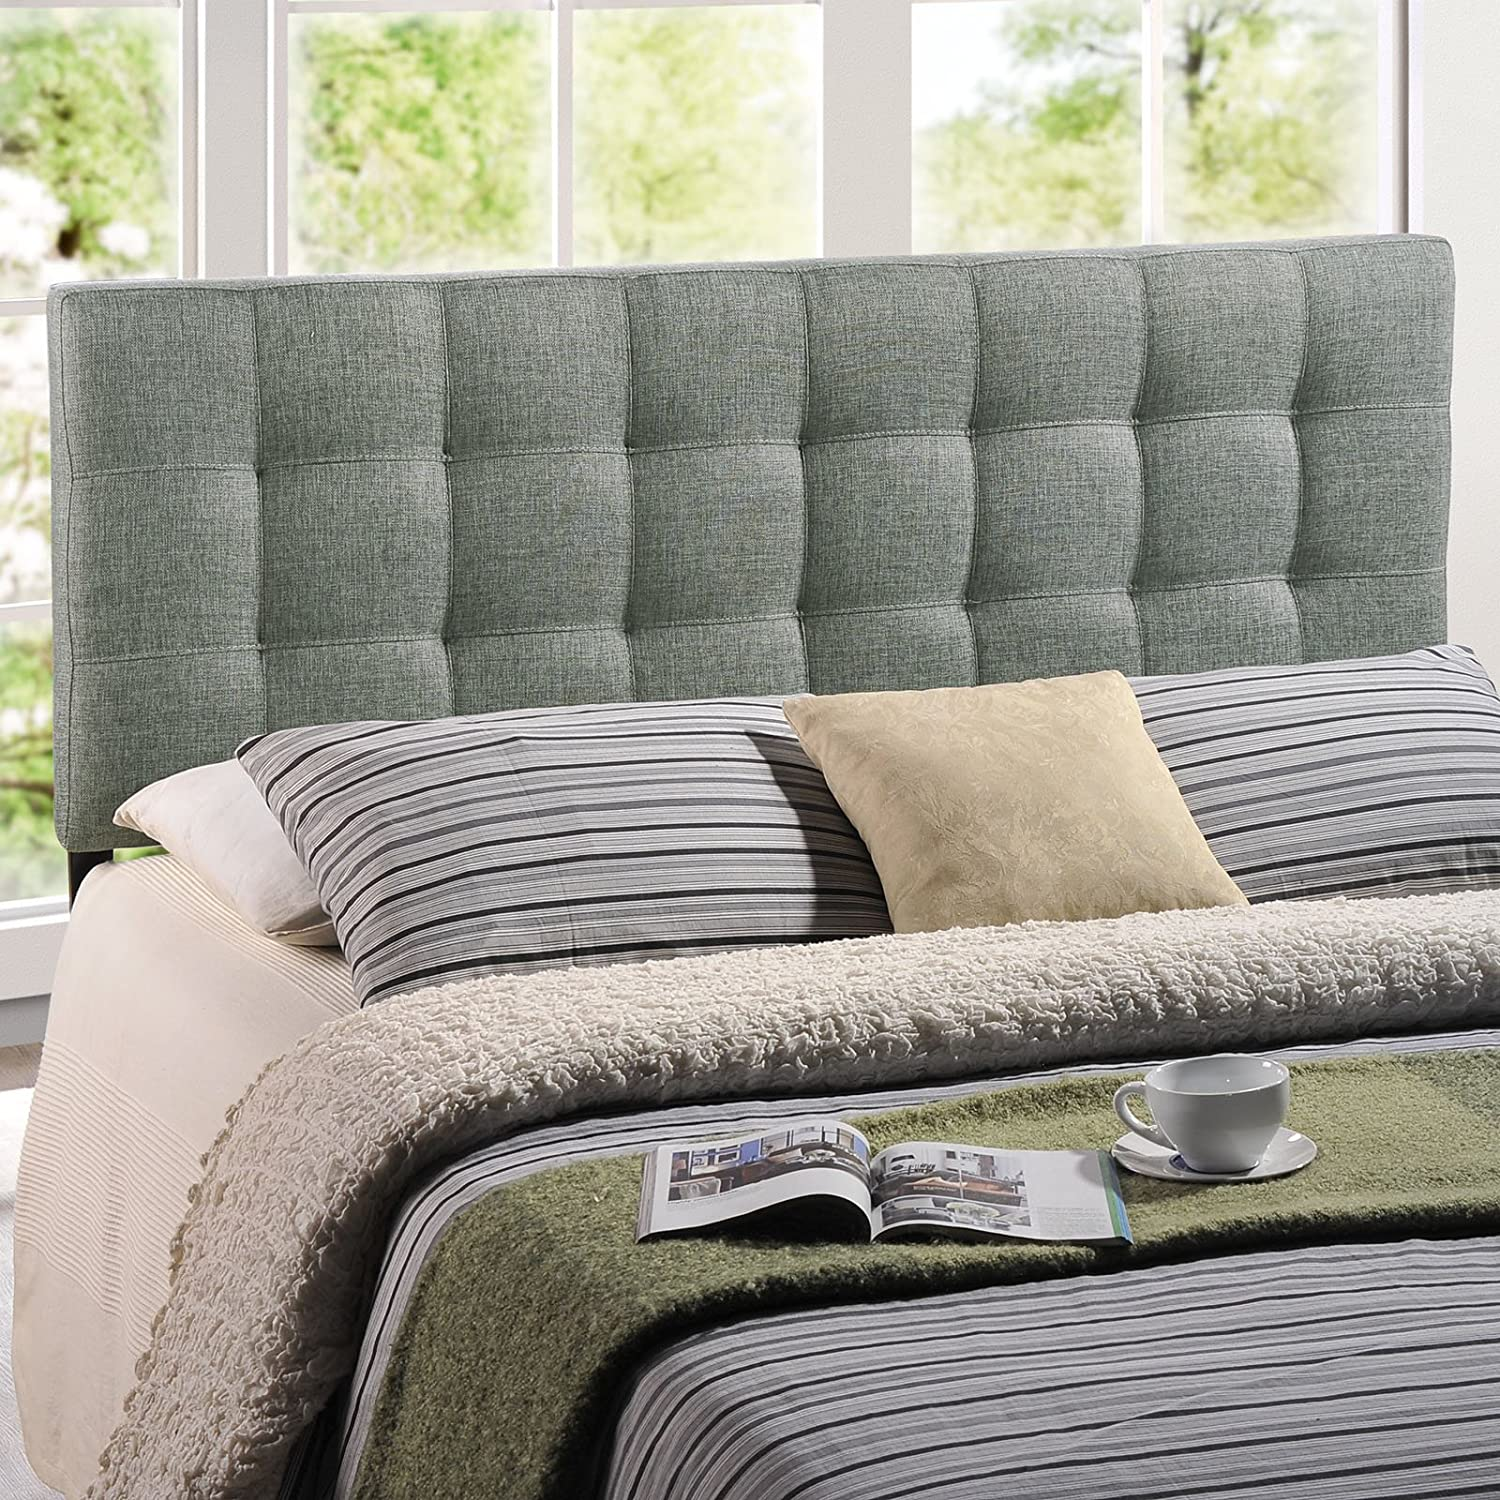 hour headboard id fabric upholstered